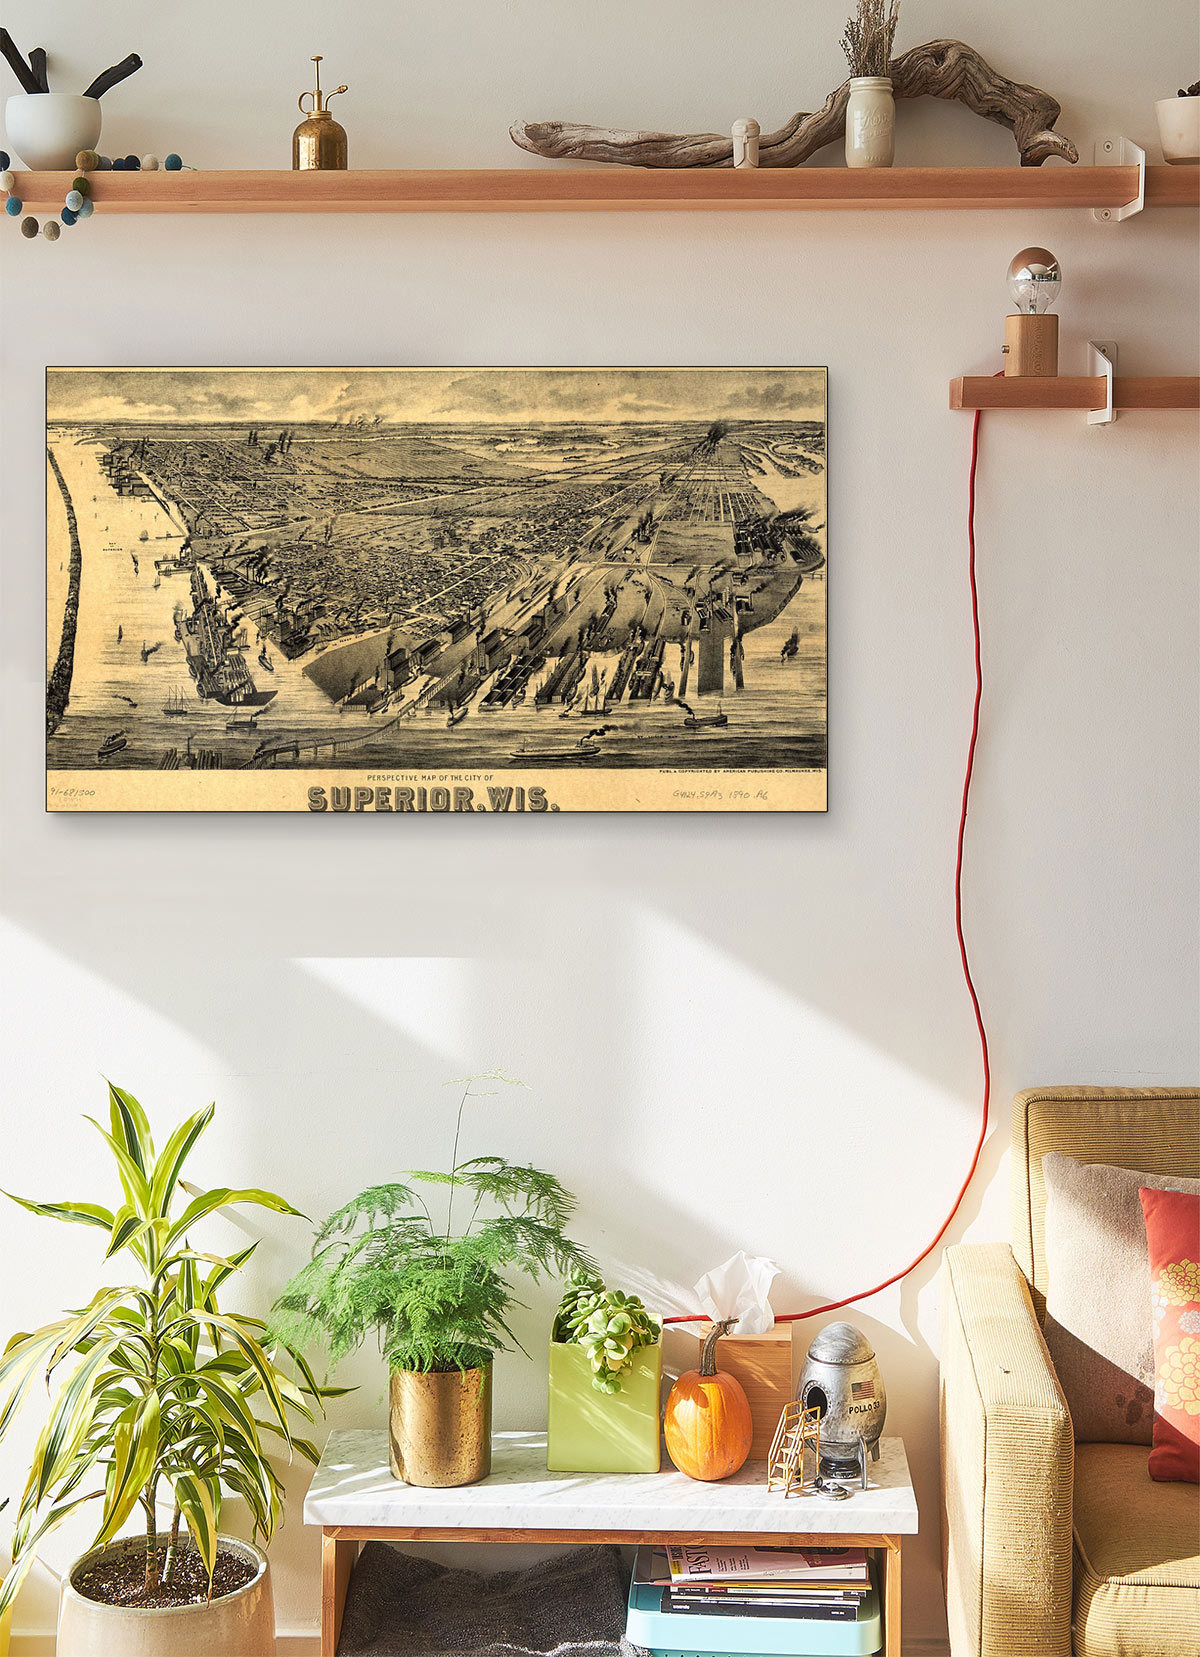 Perspective LARGE Vintage Map Of The City Of Superior Wis LARGE Vintage Map